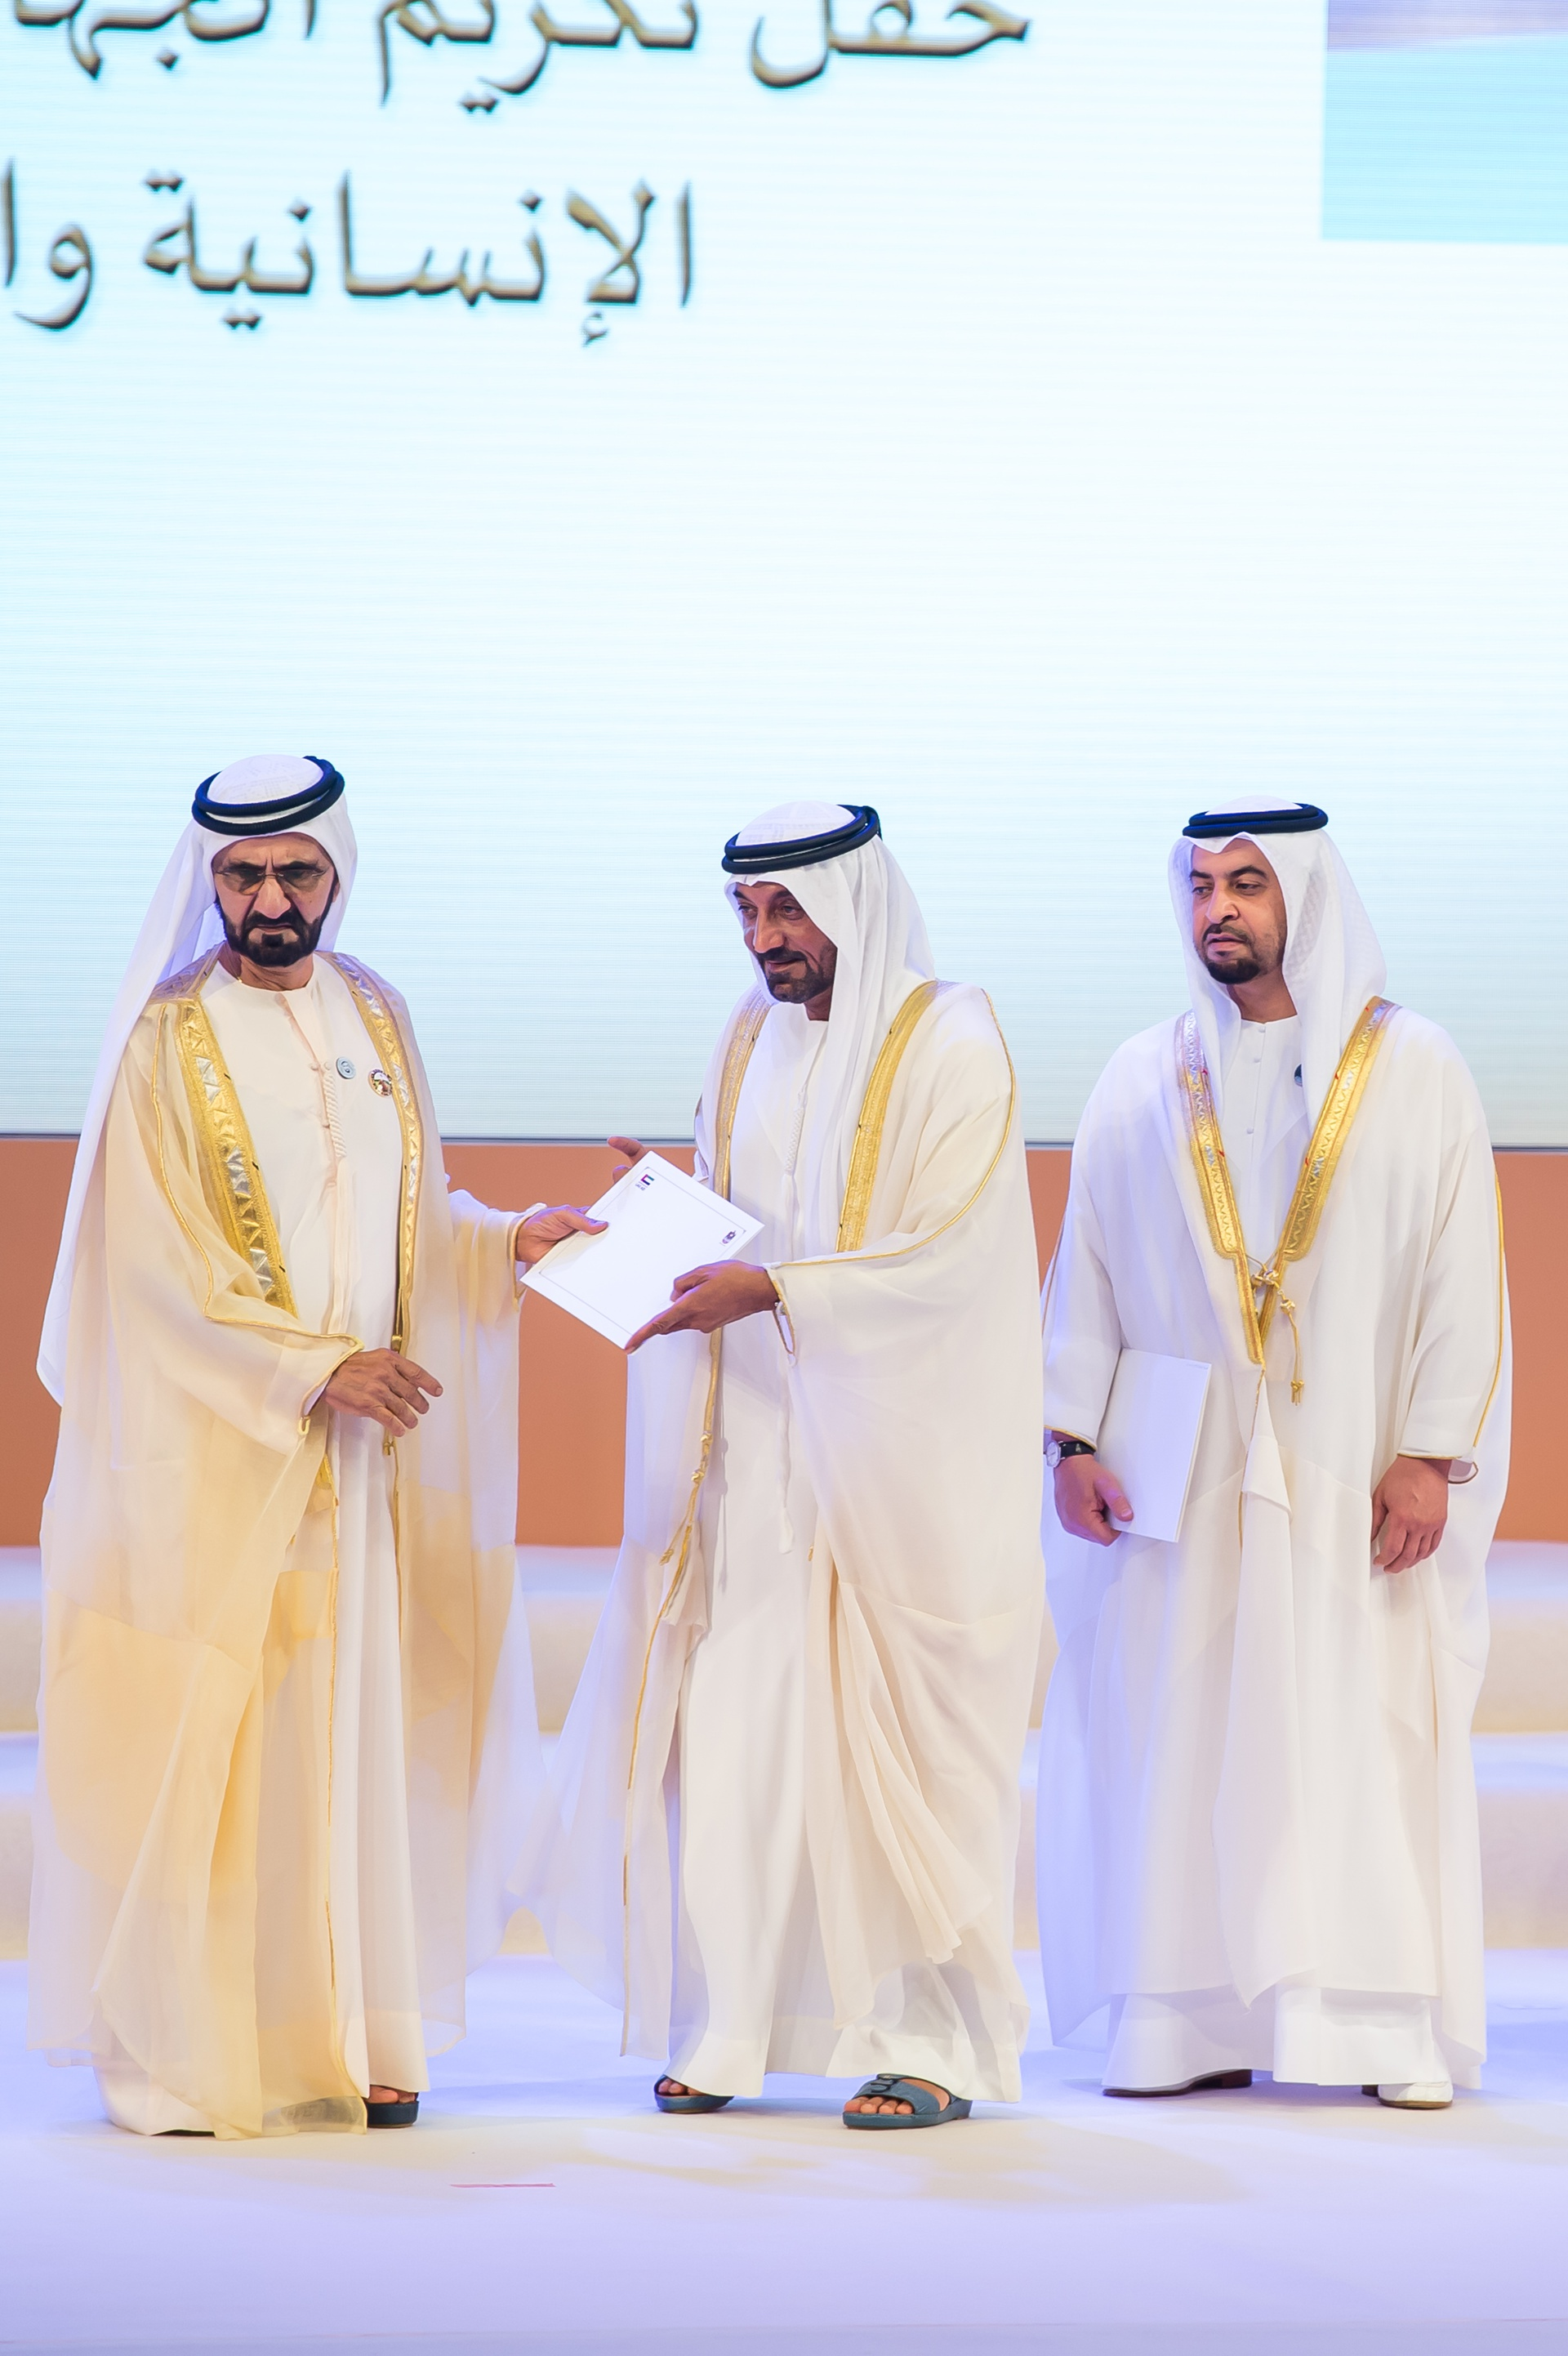 His Highness Sheikh Mohammed bin Rashid Al Maktoum, UAE Vice President, Prime Minister and Ruler of Dubai; presented the award to His Highness Sheikh Ahmed bin Saeed Al Maktoum, Chairman & Chief Executive, Emirates Airline & Group.